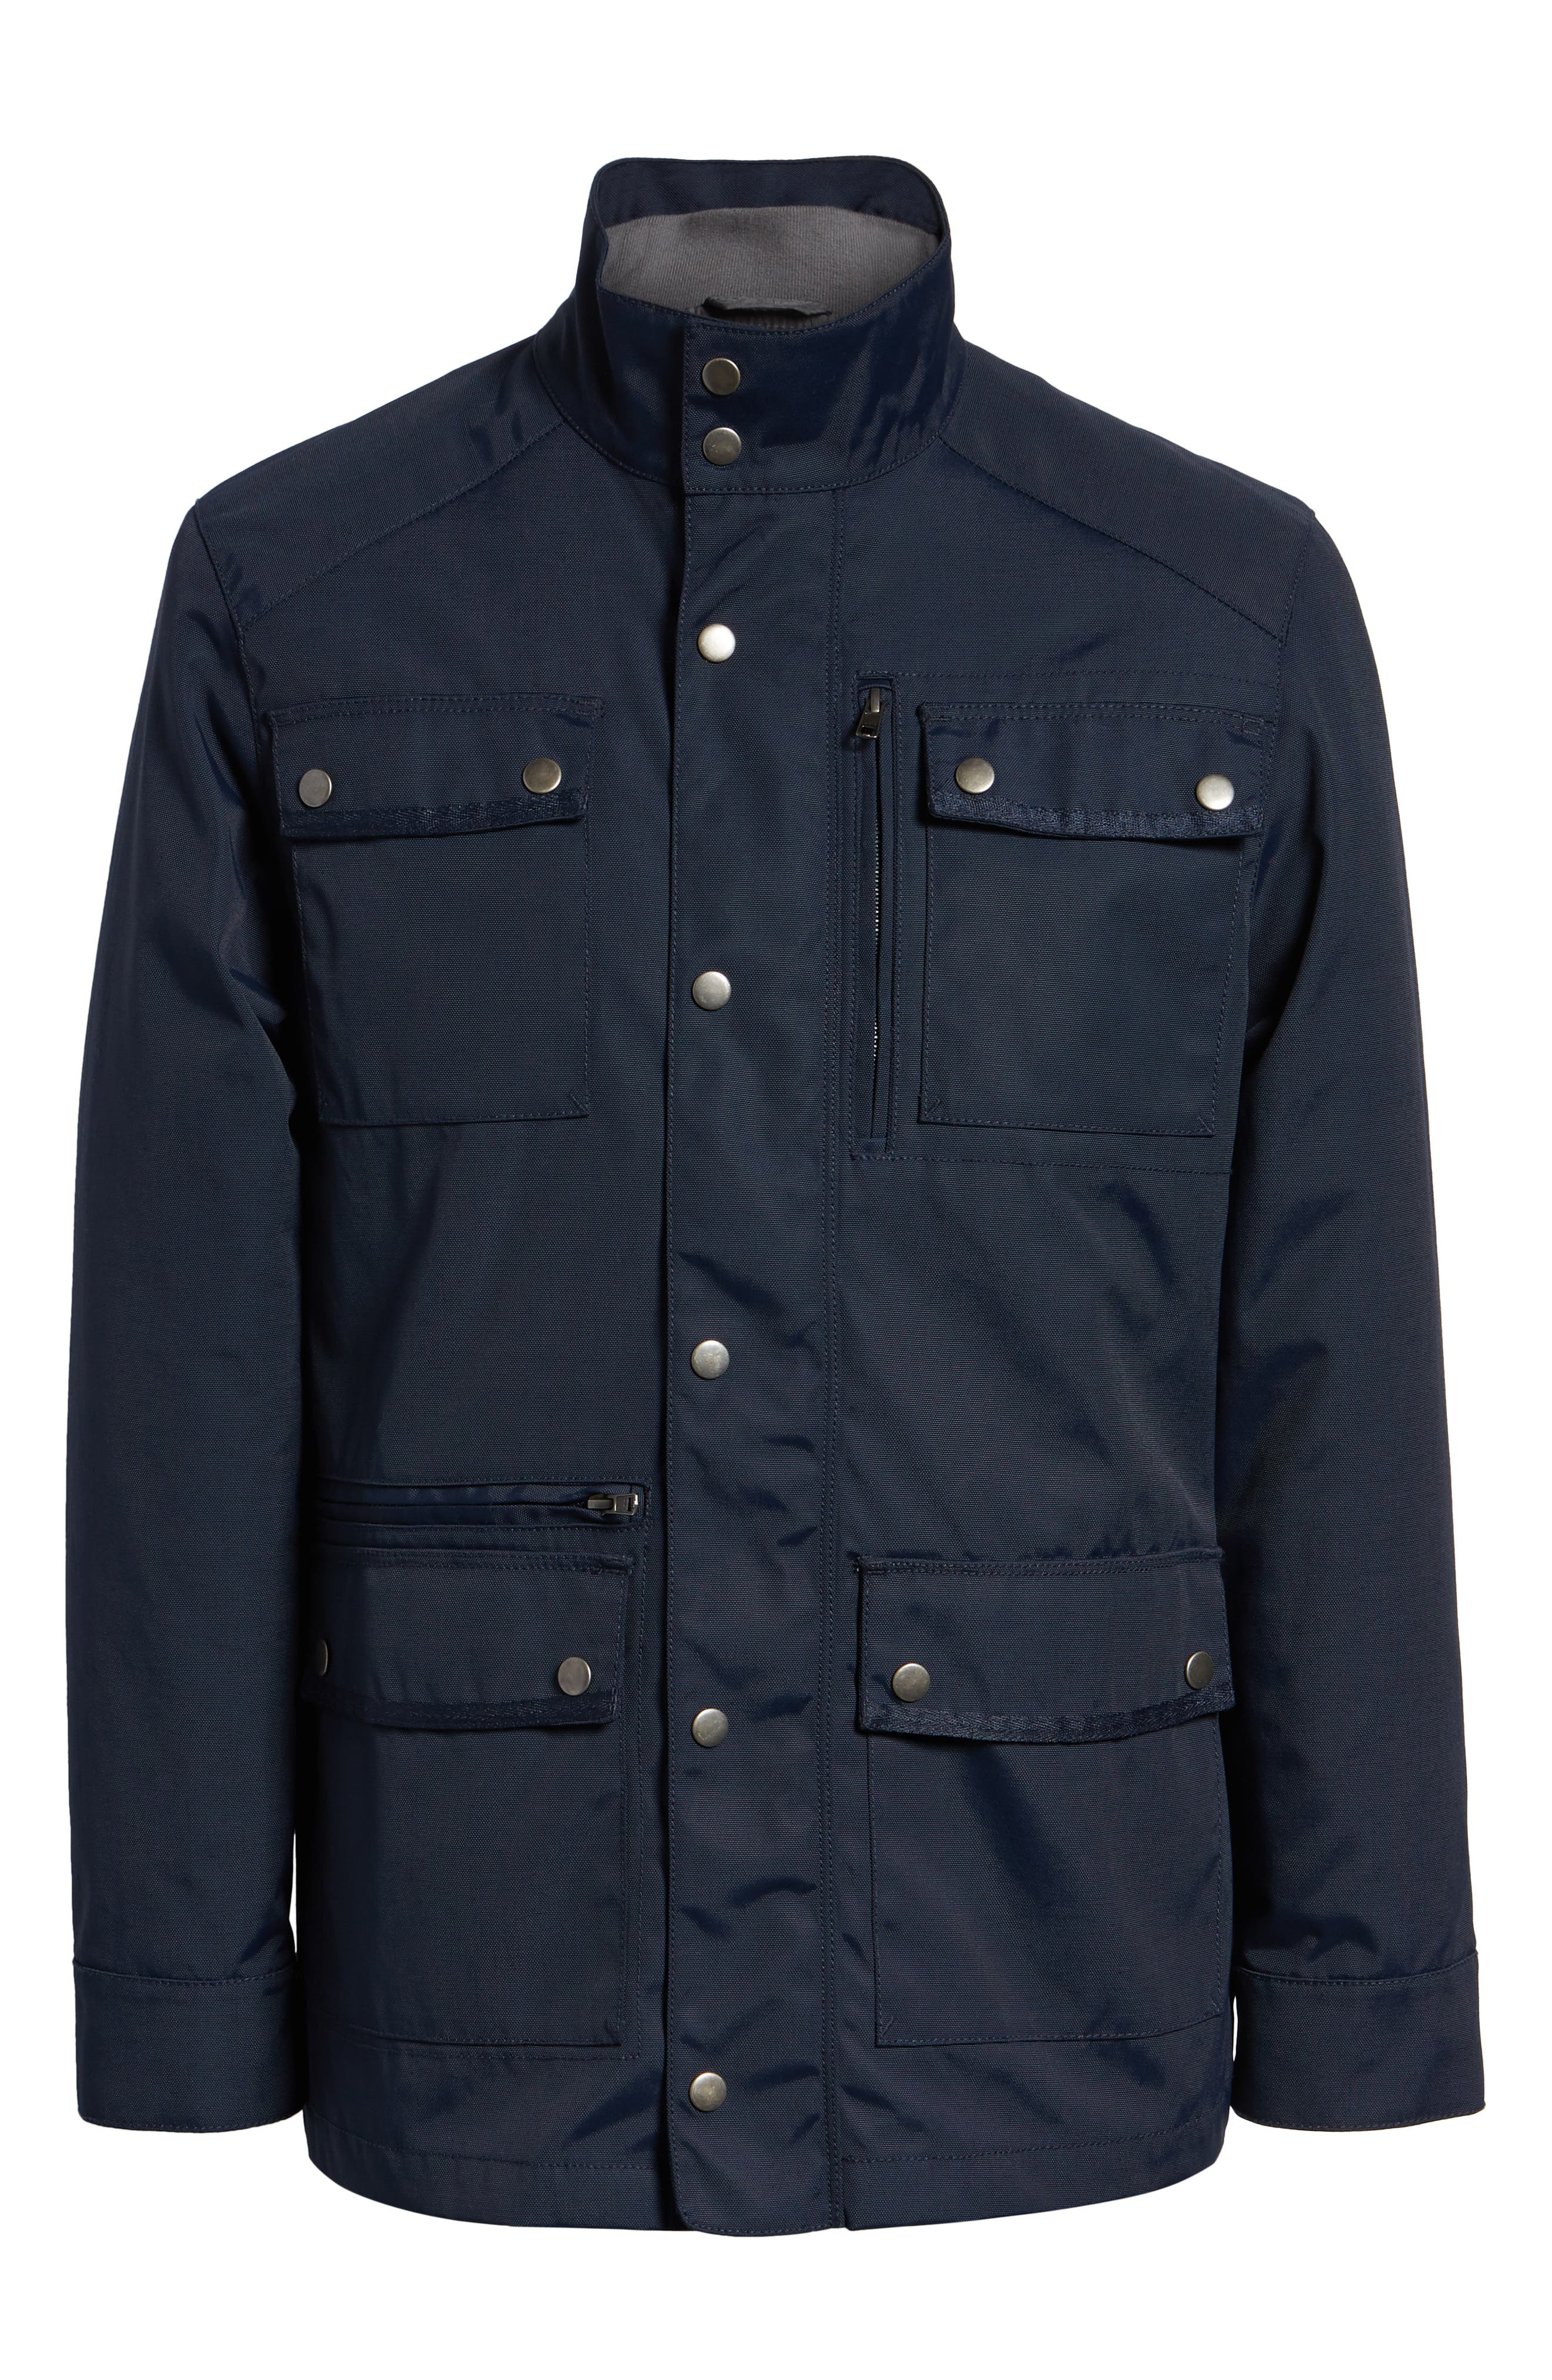 'Ethan' 3-in-1 Field Jacket,                             Alternate thumbnail 6, color,                             NAVY